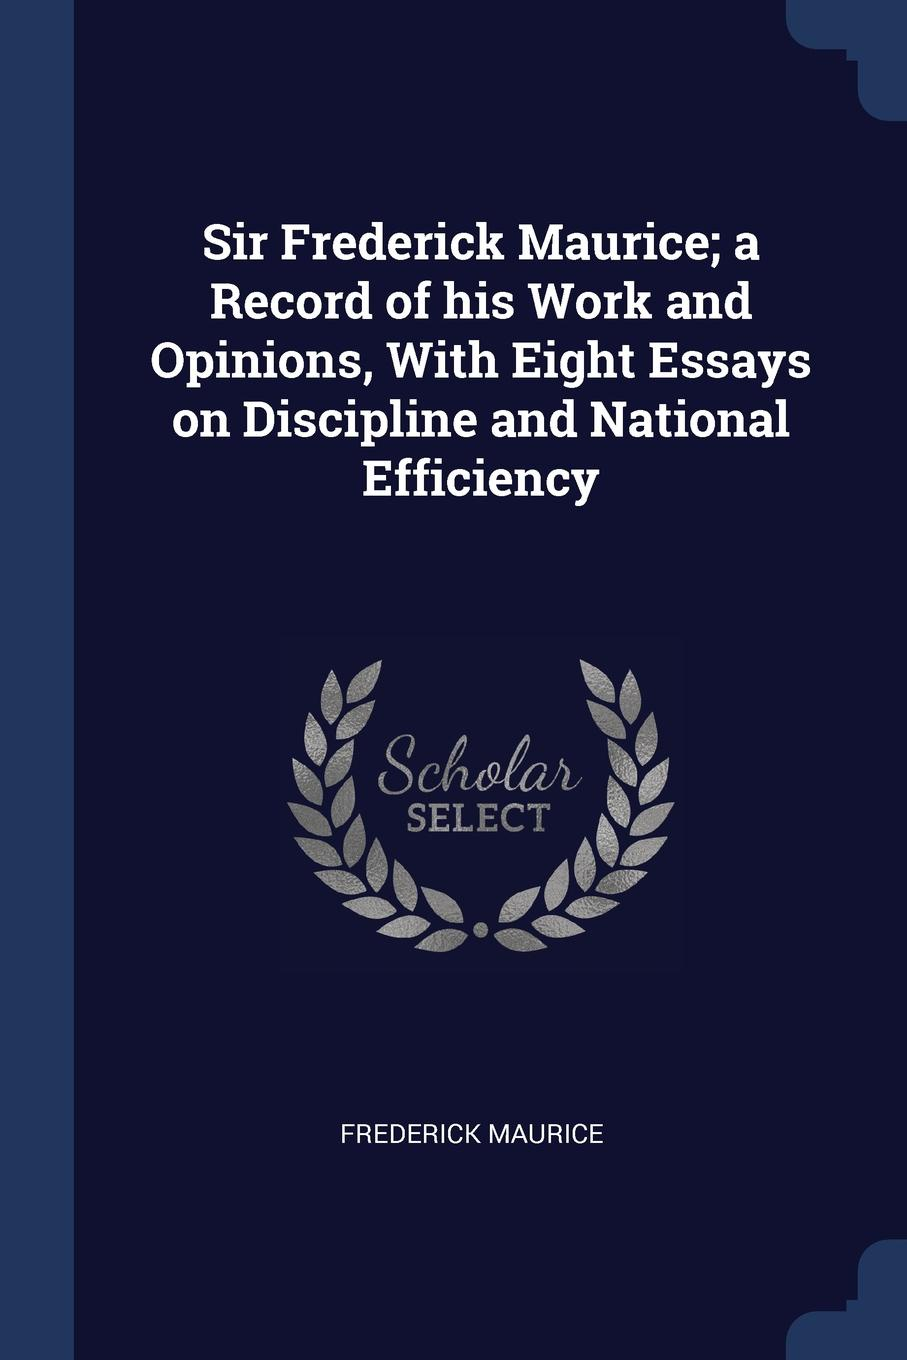 Sir Frederick Maurice; a Record of his Work and Opinions, With Eight Essays on Discipline and National Efficiency. Frederick Maurice